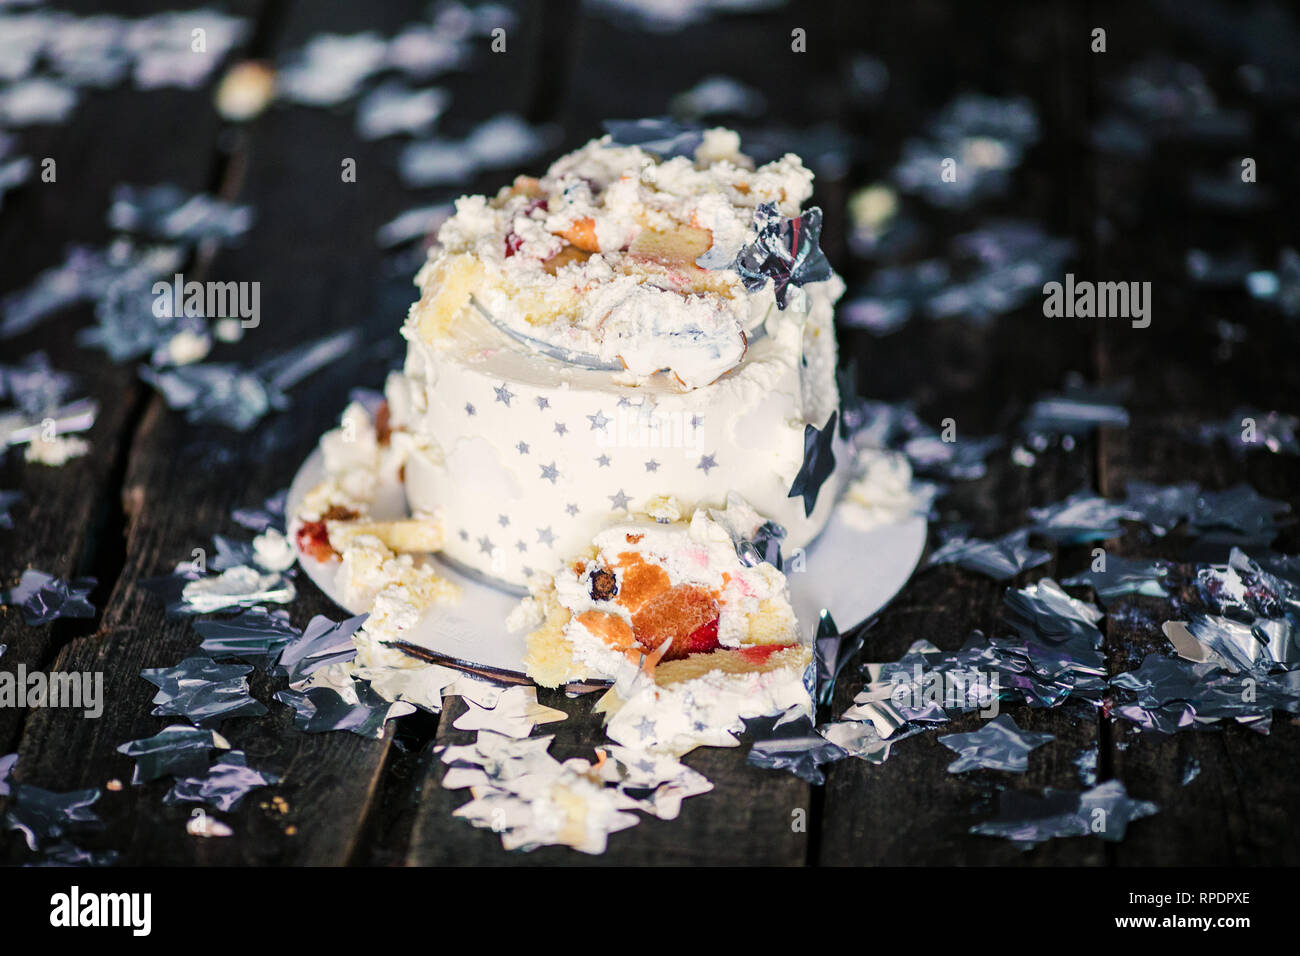 Smashed First Birthday White Cake With Stars And One Candle For Little Baby Boy Decorations Black Background